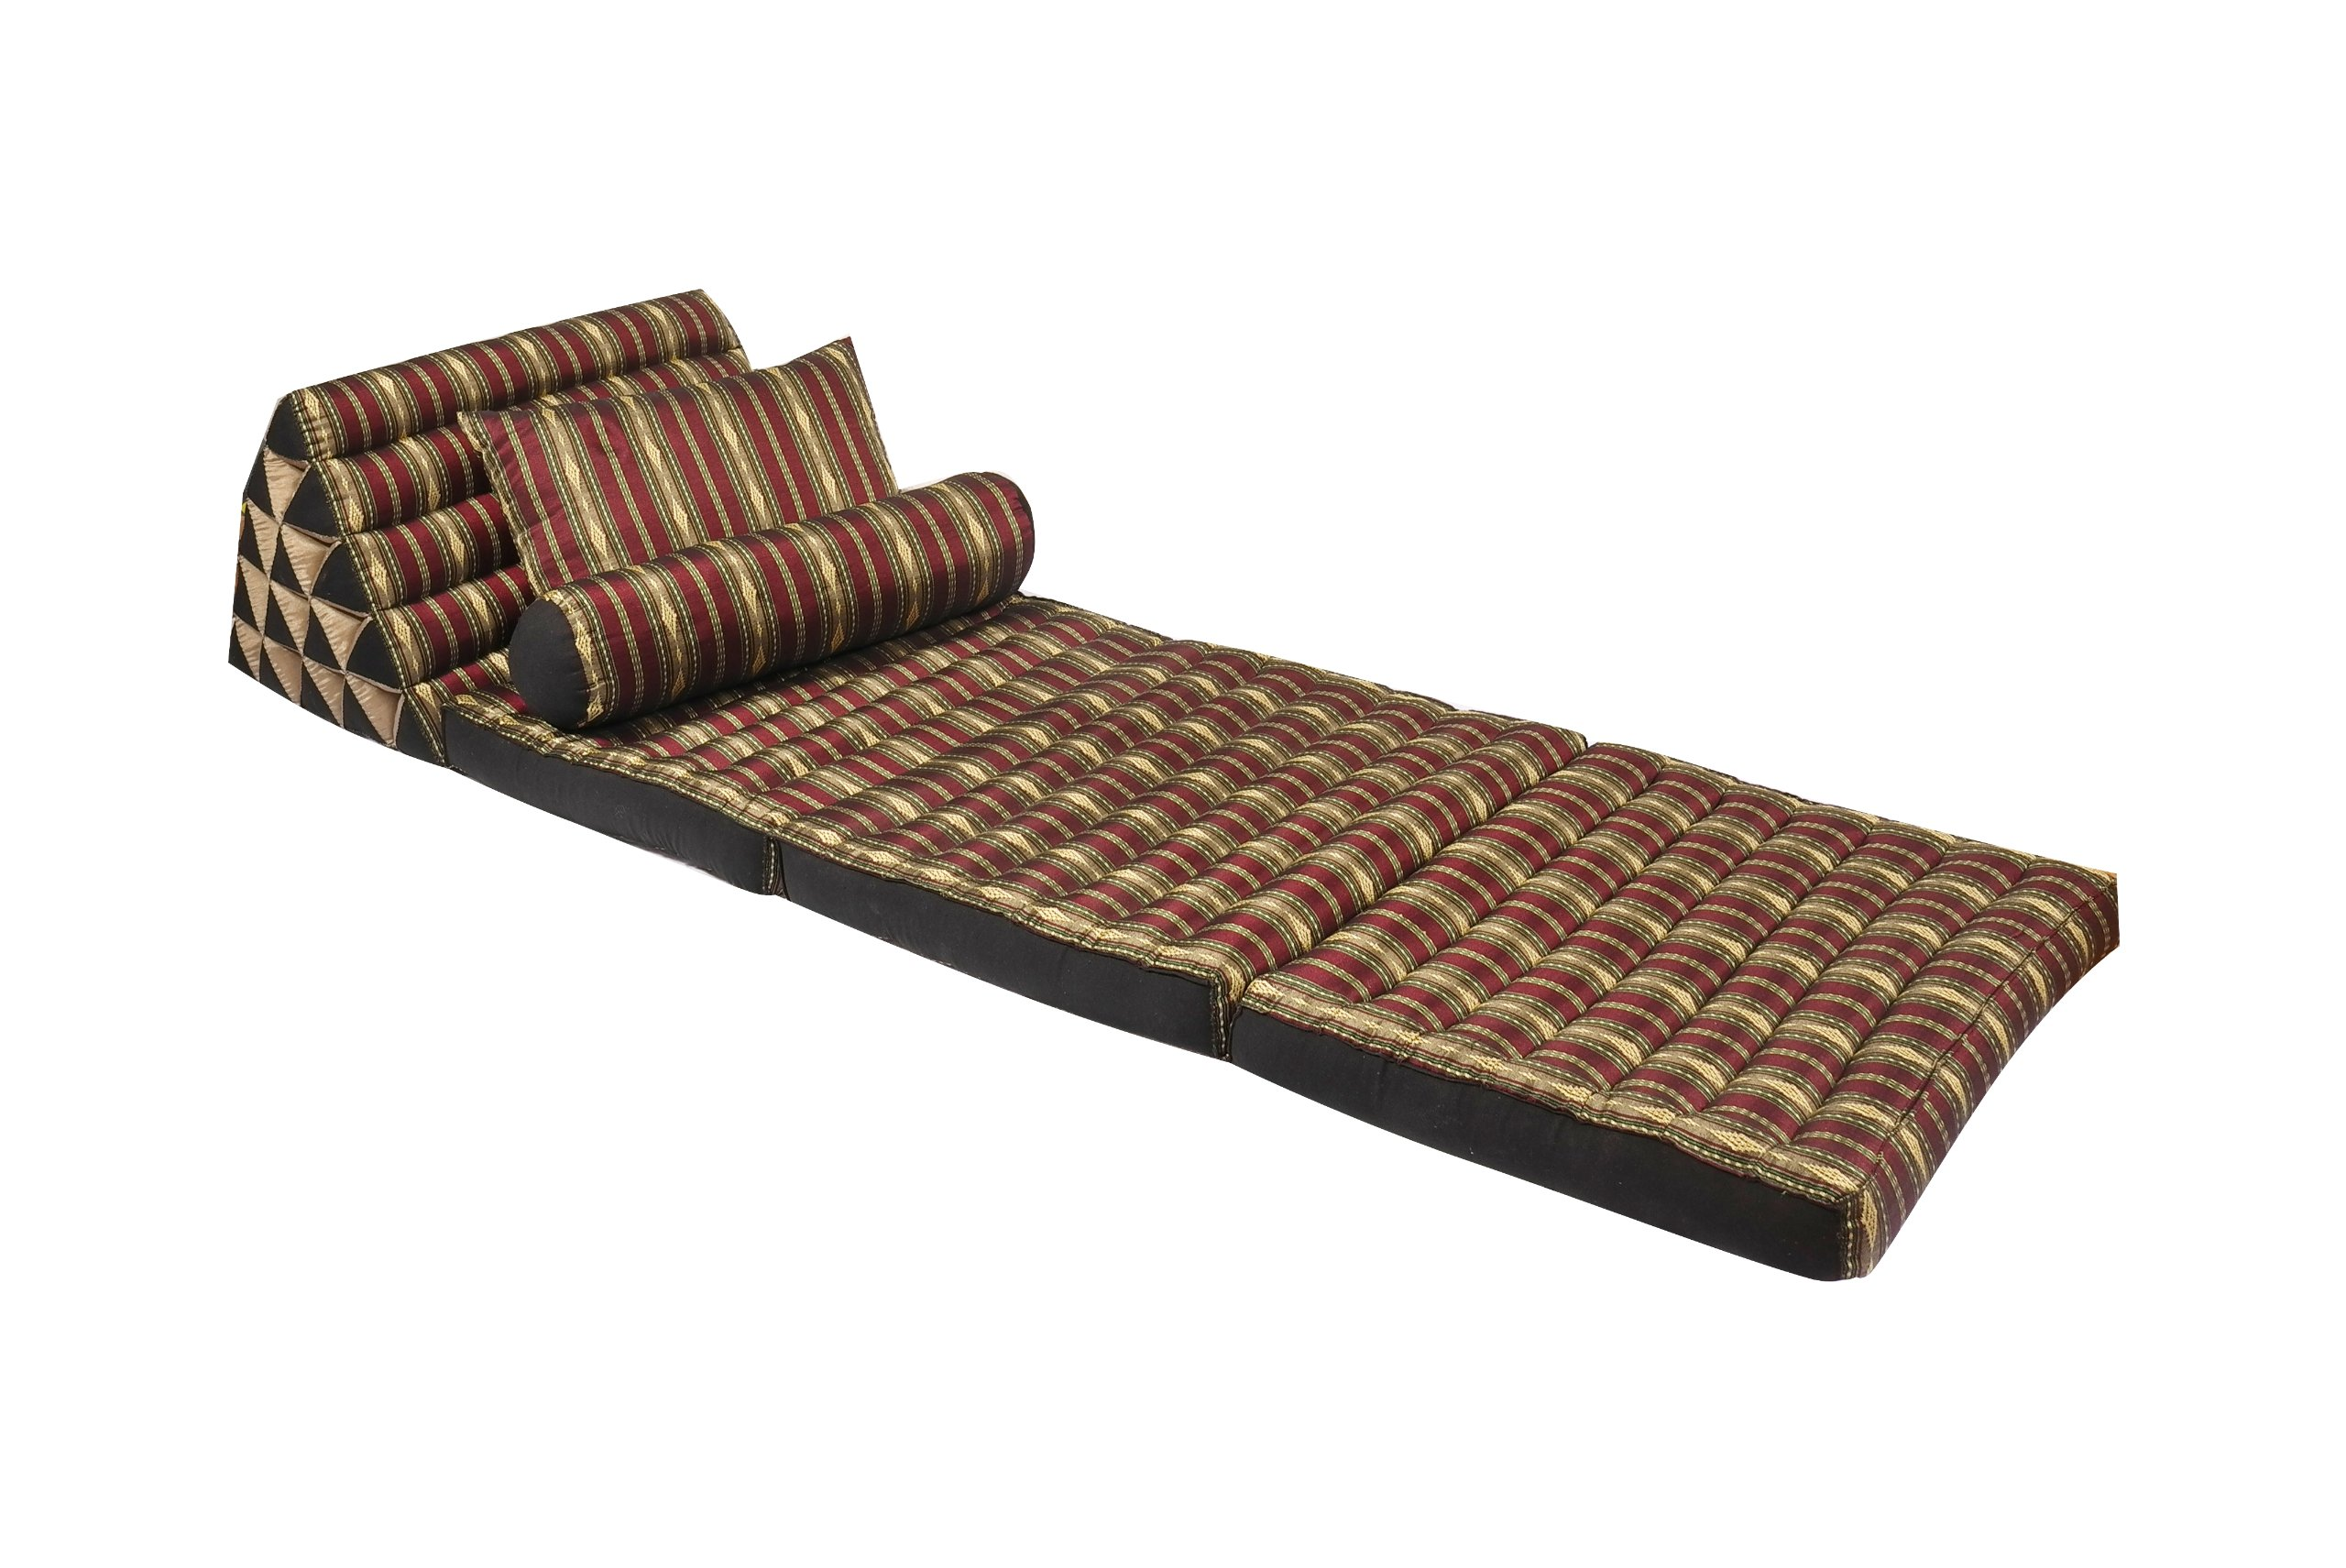 Extravagant Thai Pillow Set: Triangle Mat + 2 Decorative Pillows, 100% Kapok Stuffing, Radiant Burgundy&gold Stripes by Handelsturm Thaikissen